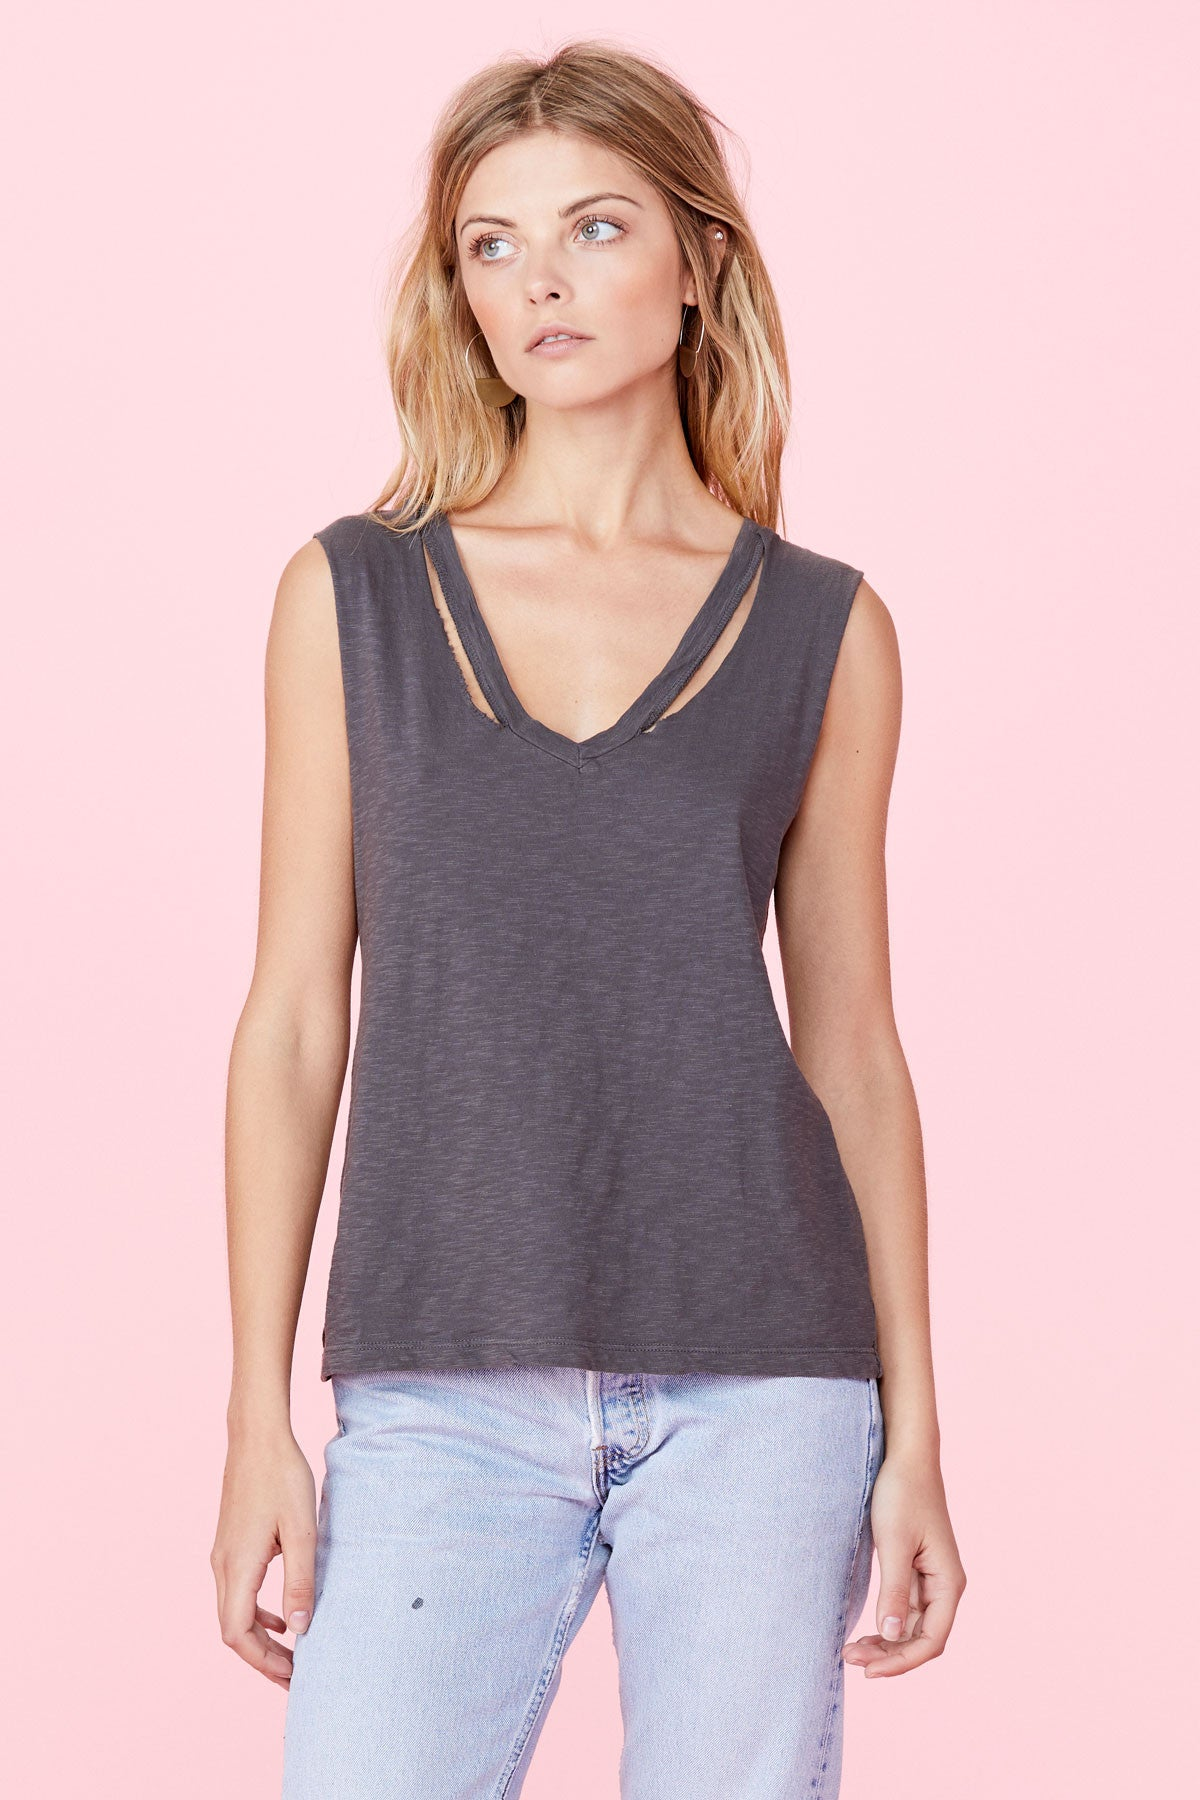 Double Fallon Tank - Faded Charcoal